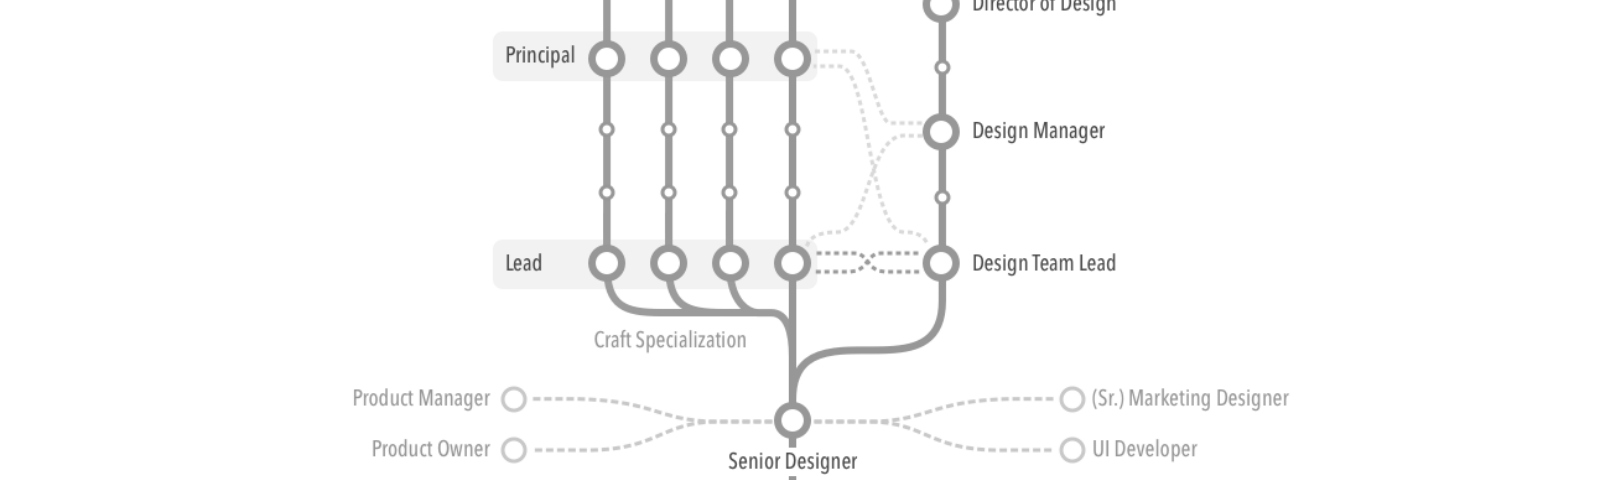 The Branching Career Path Prototypr